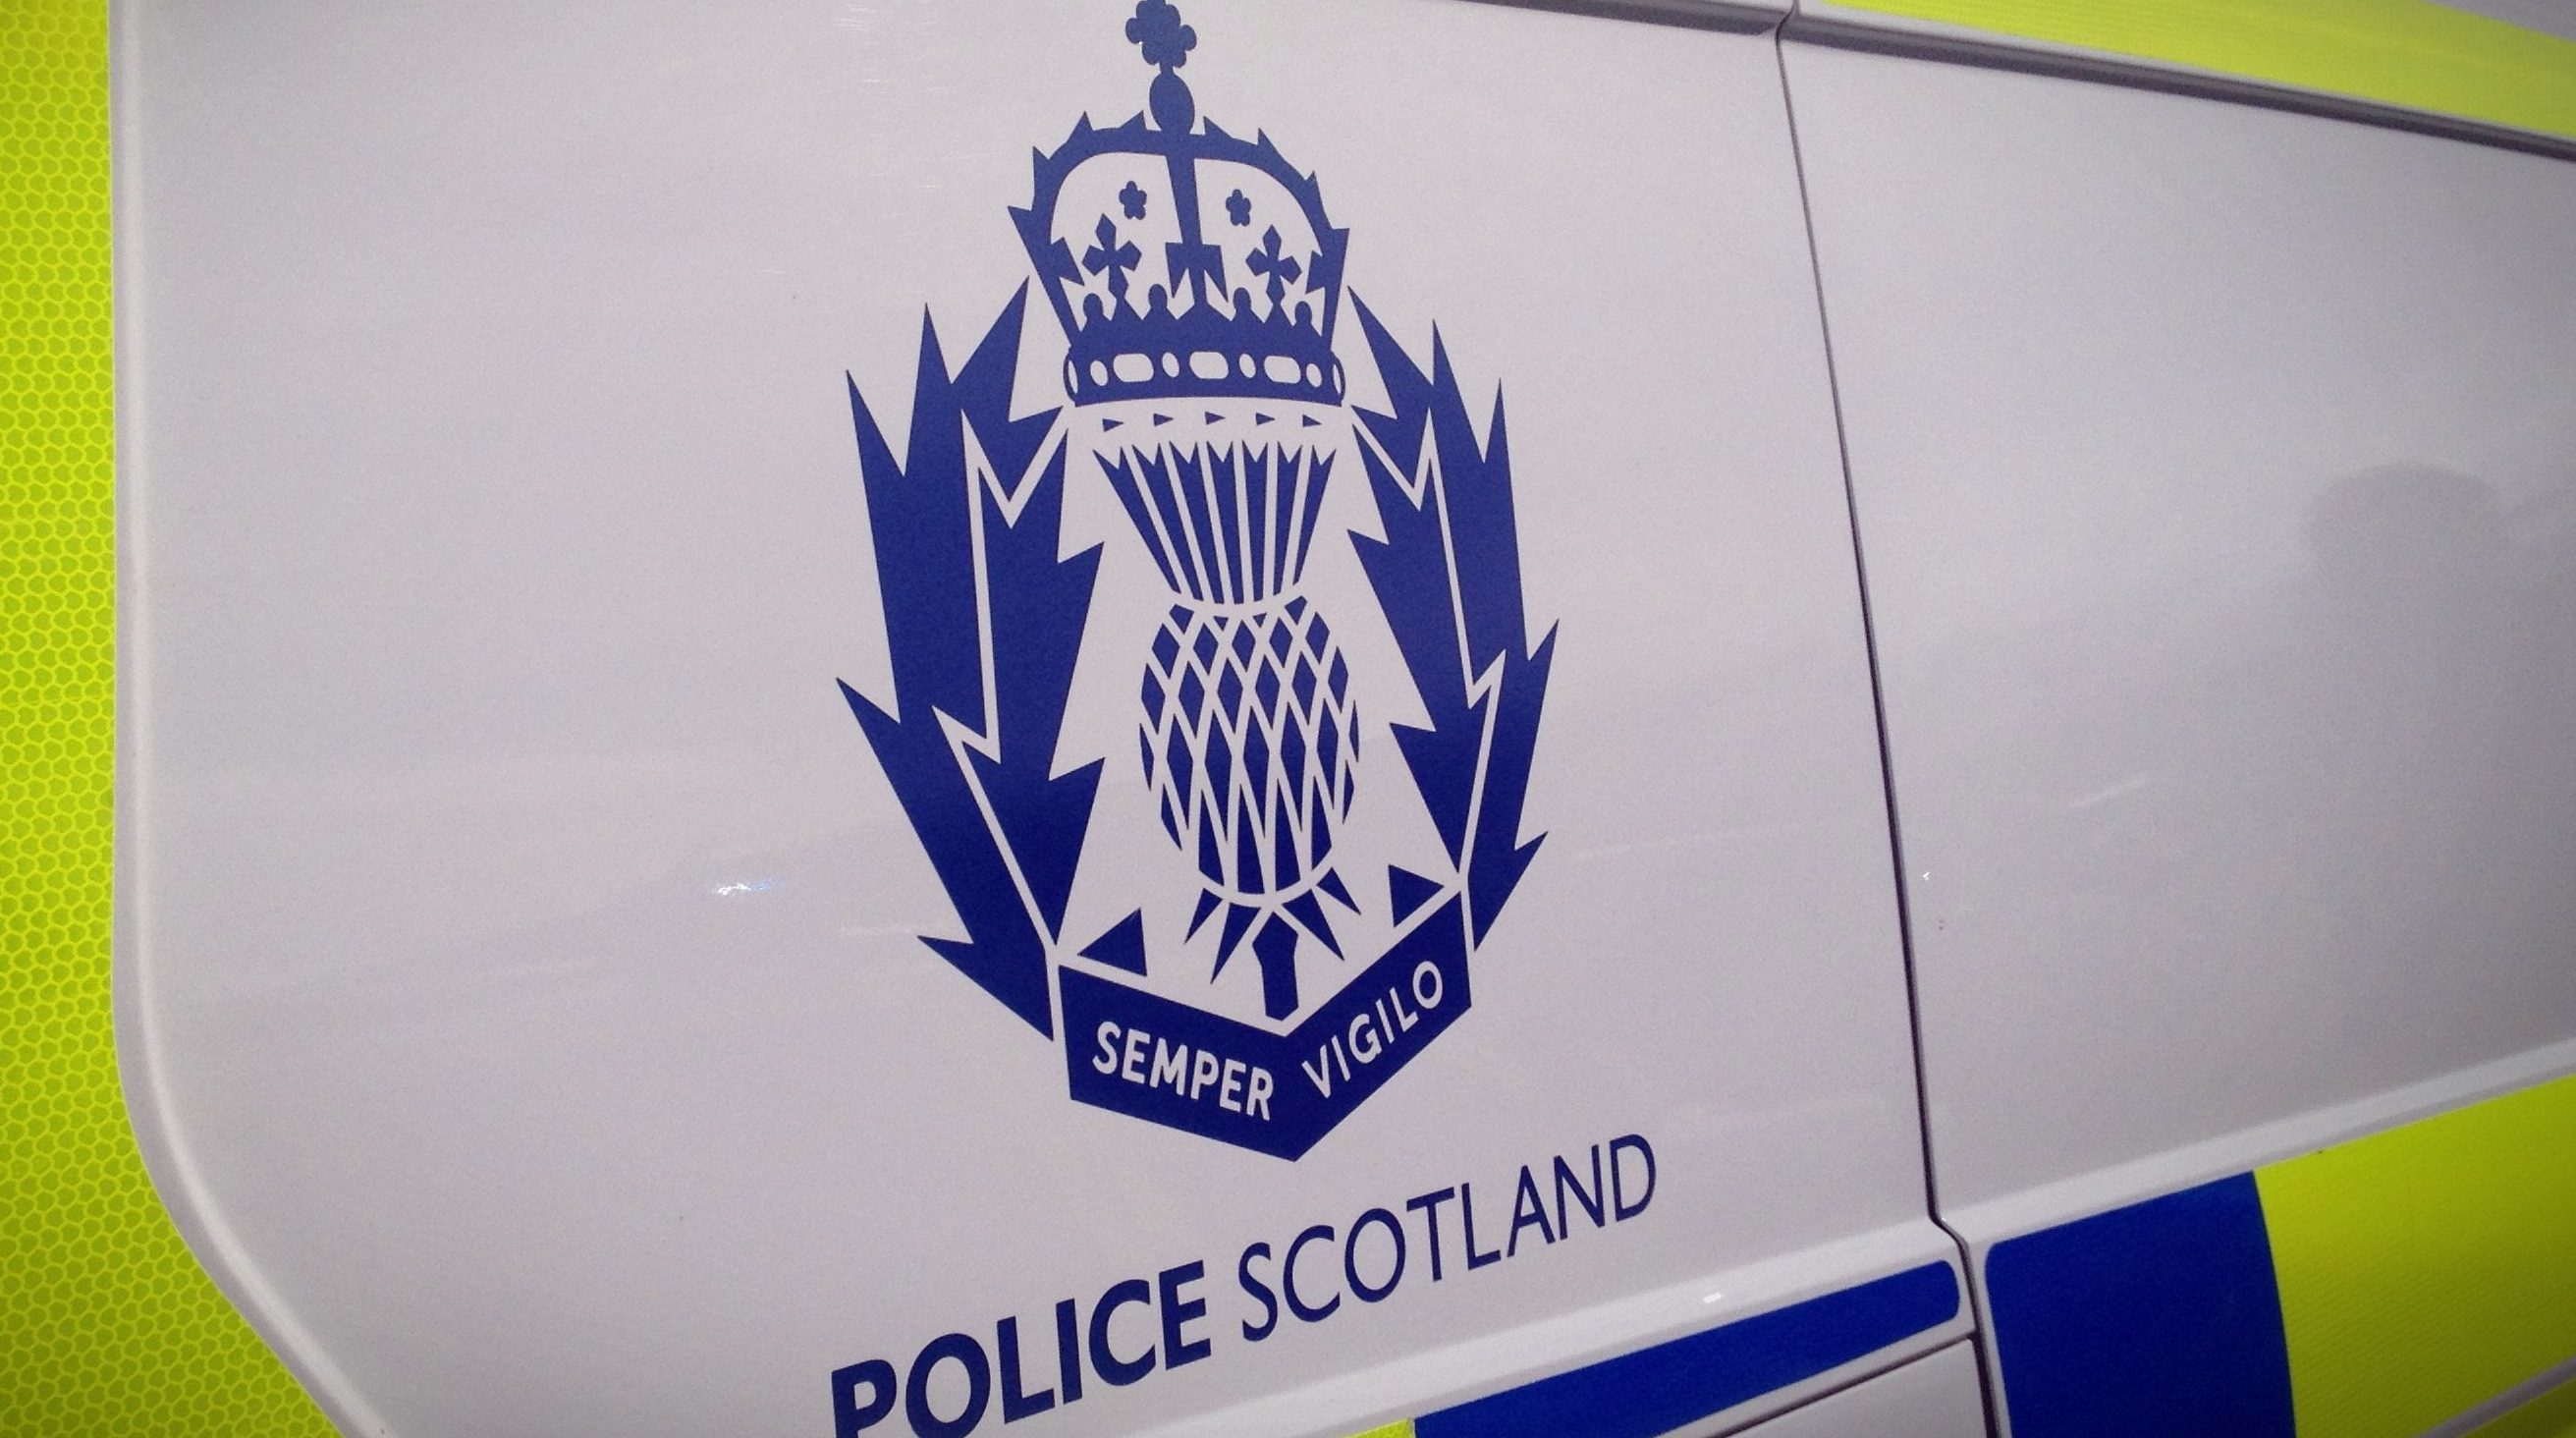 Police Scotland found the drugs in Dunfermline on Sunday.